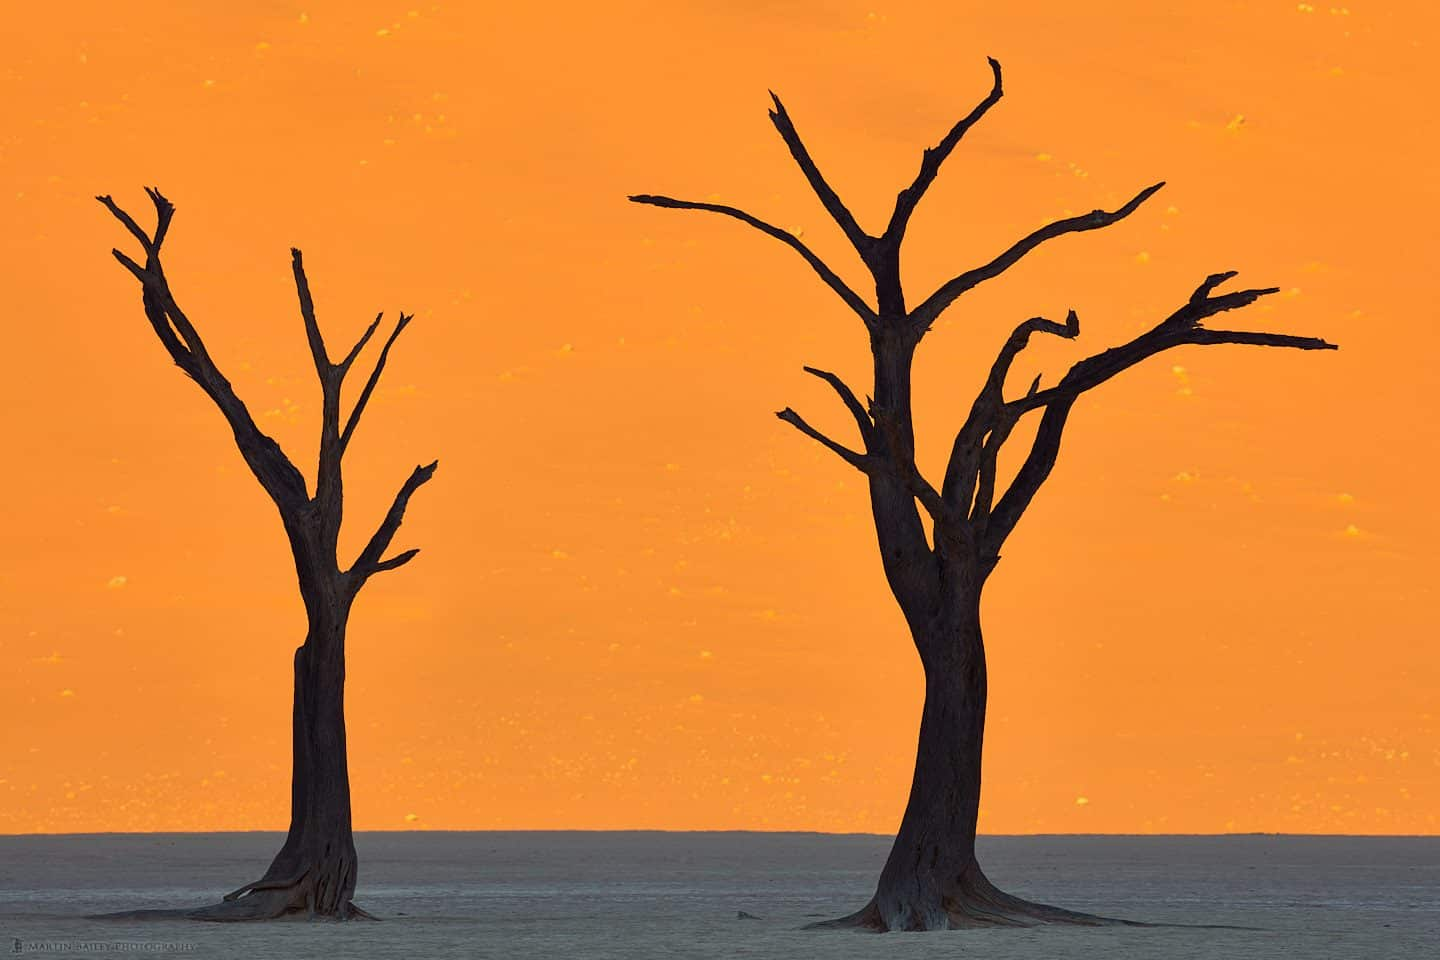 Deadvlei Camelthorn Tree Silhouettes